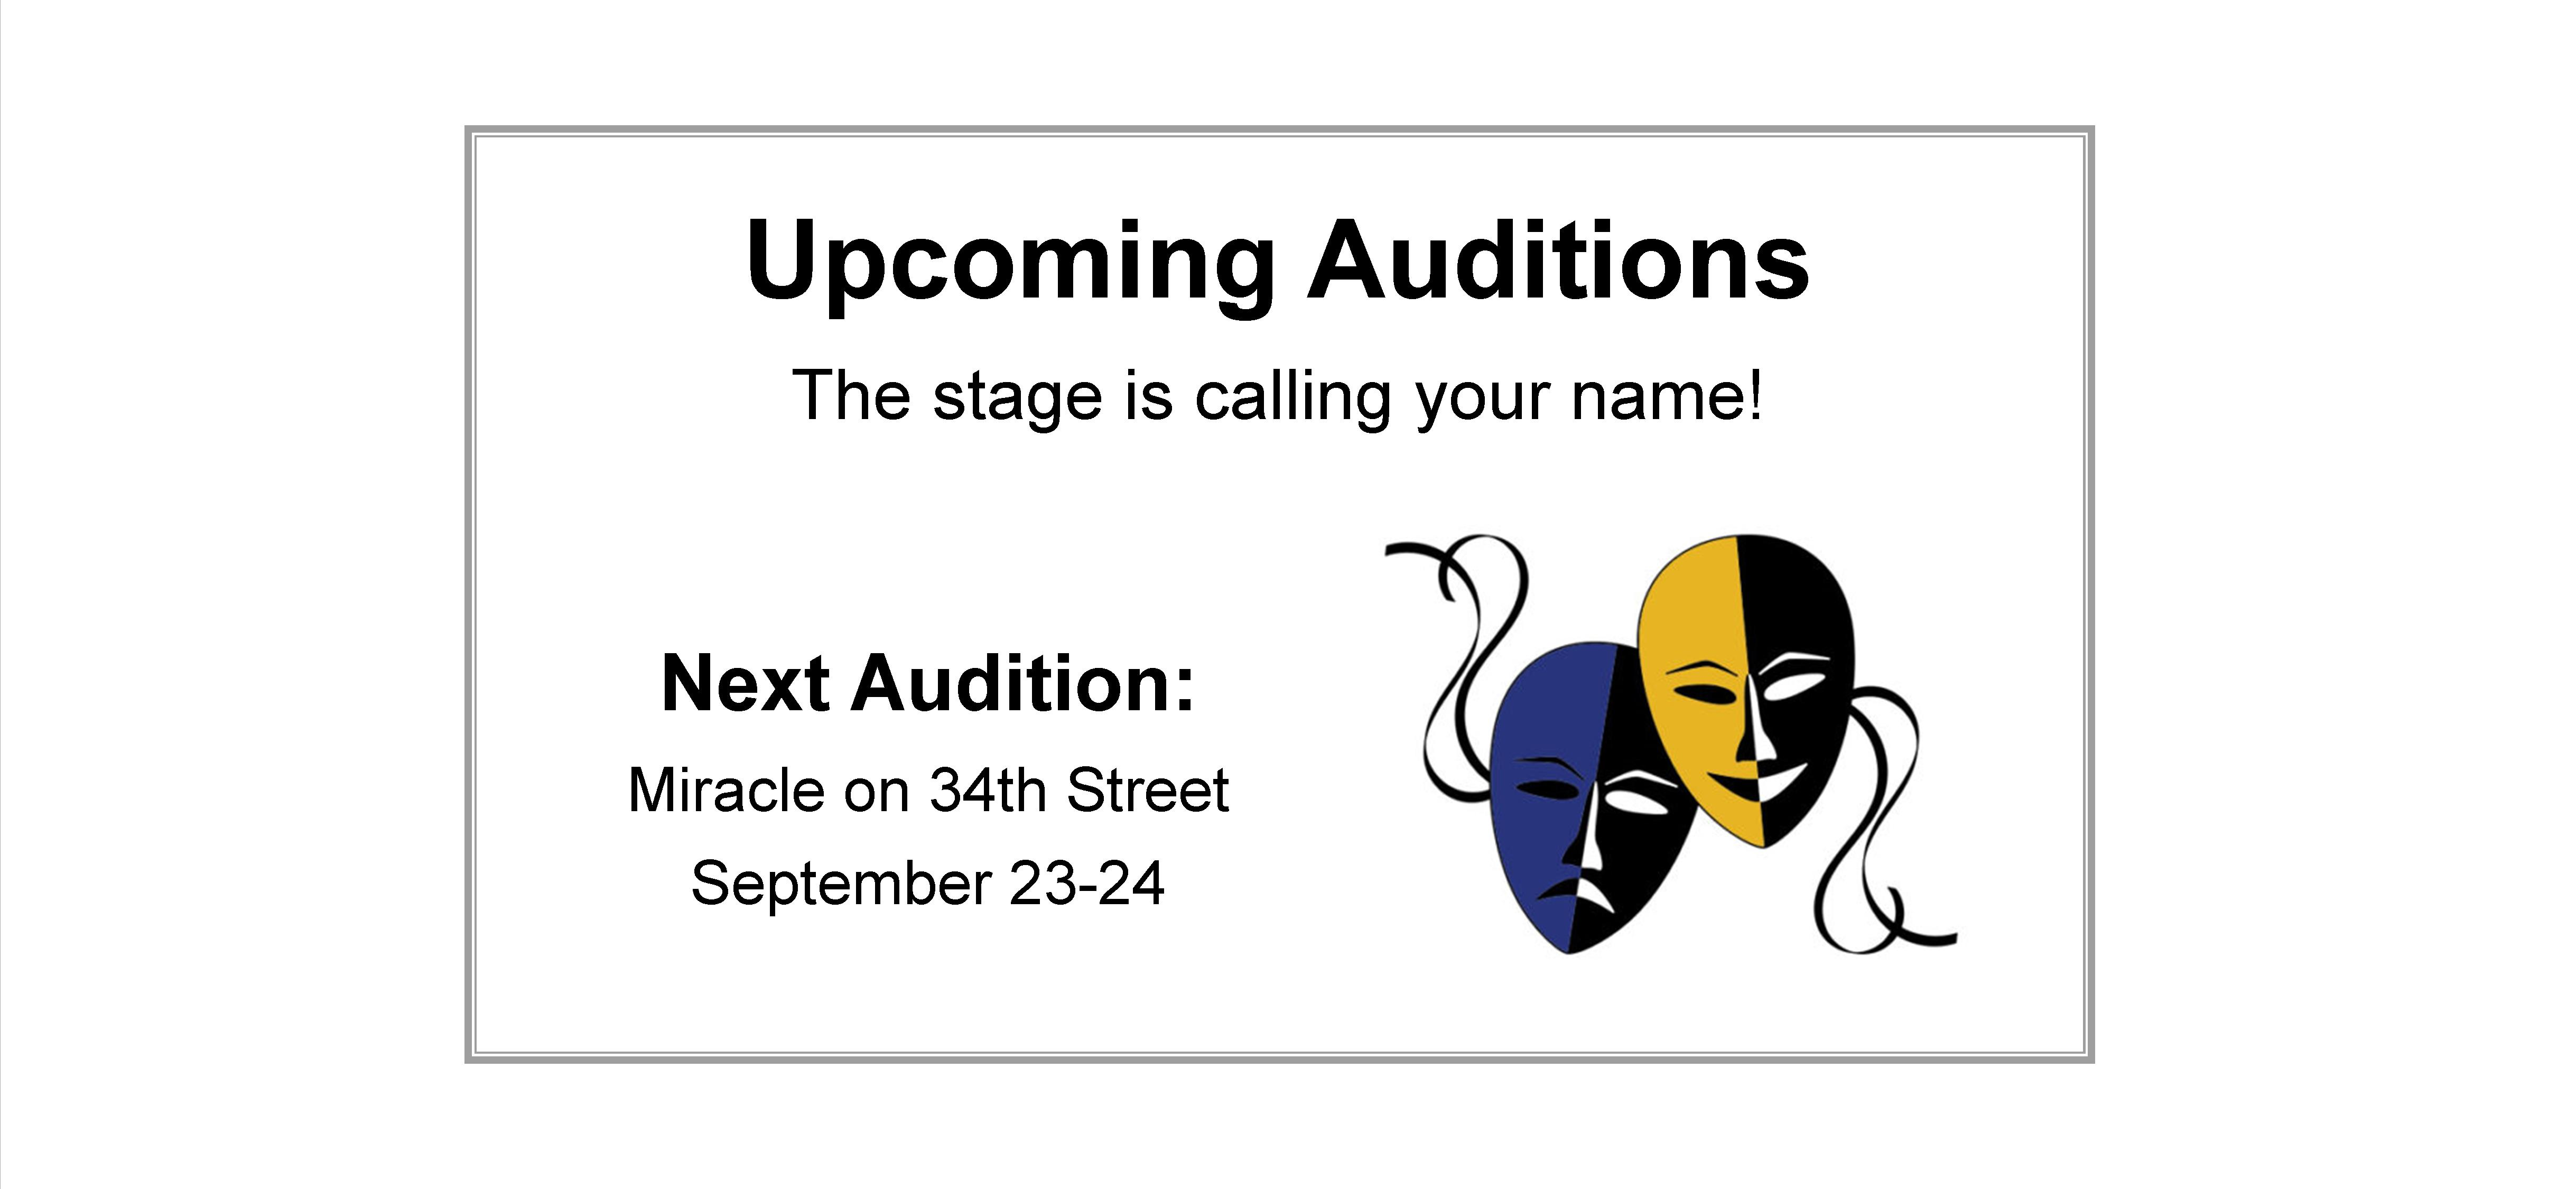 Upcoming Lionheart Auditions in Norcross